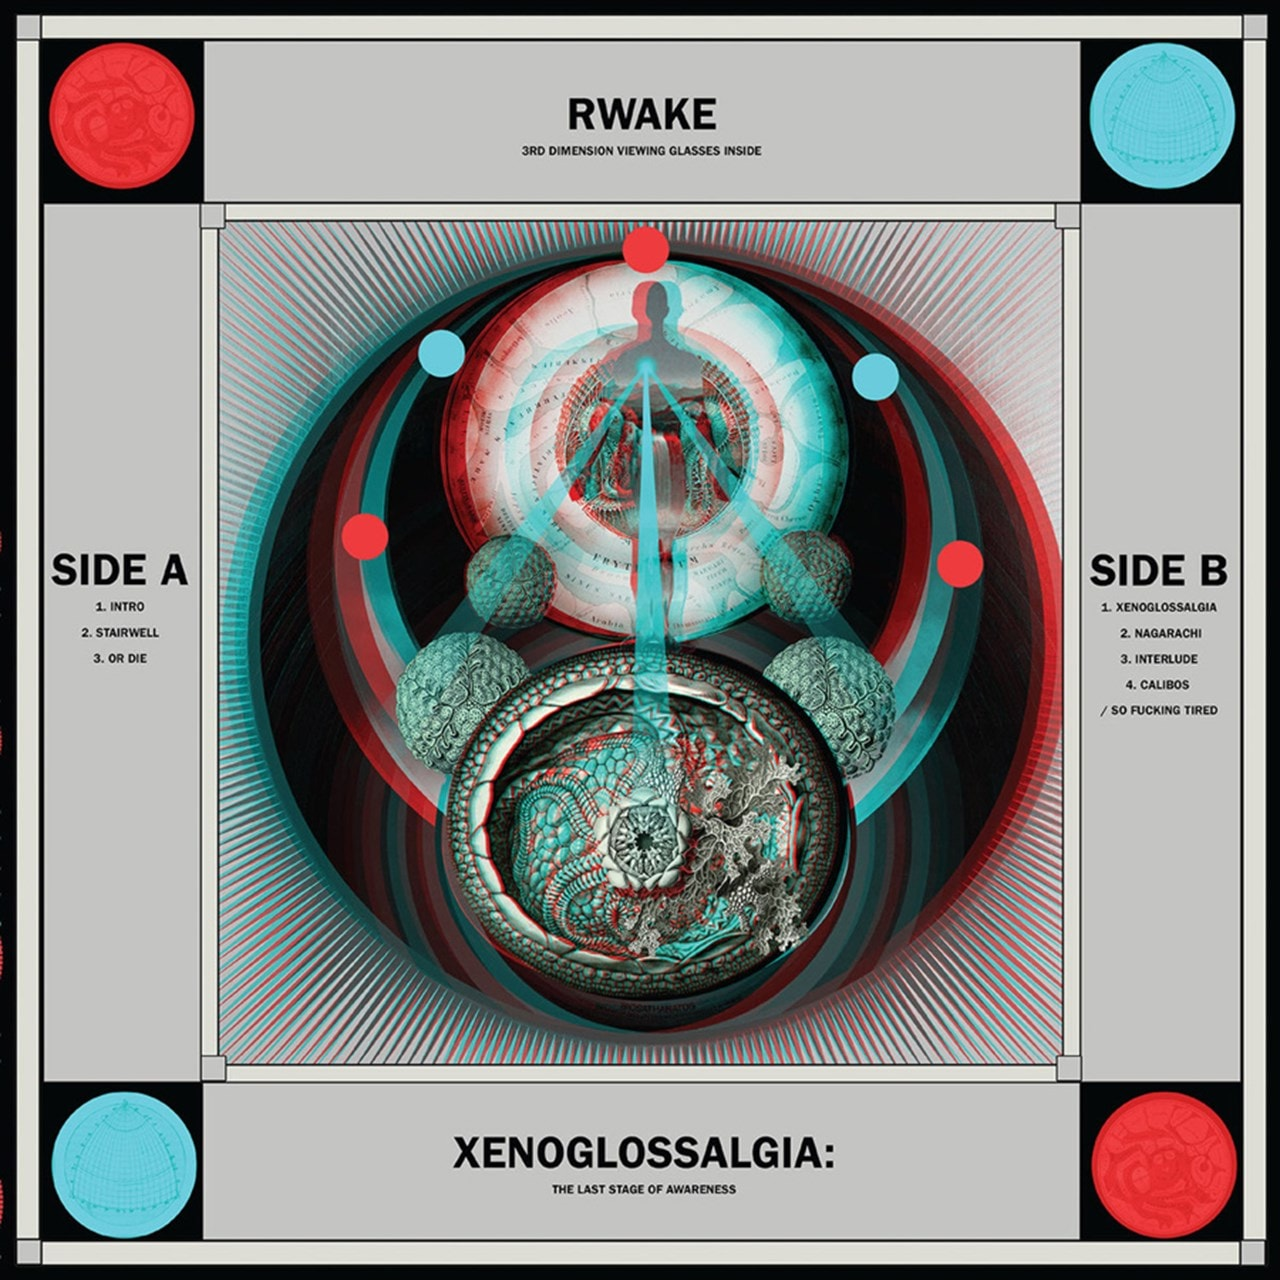 Xenoglossalgia: The Last Stage of Awareness - 1